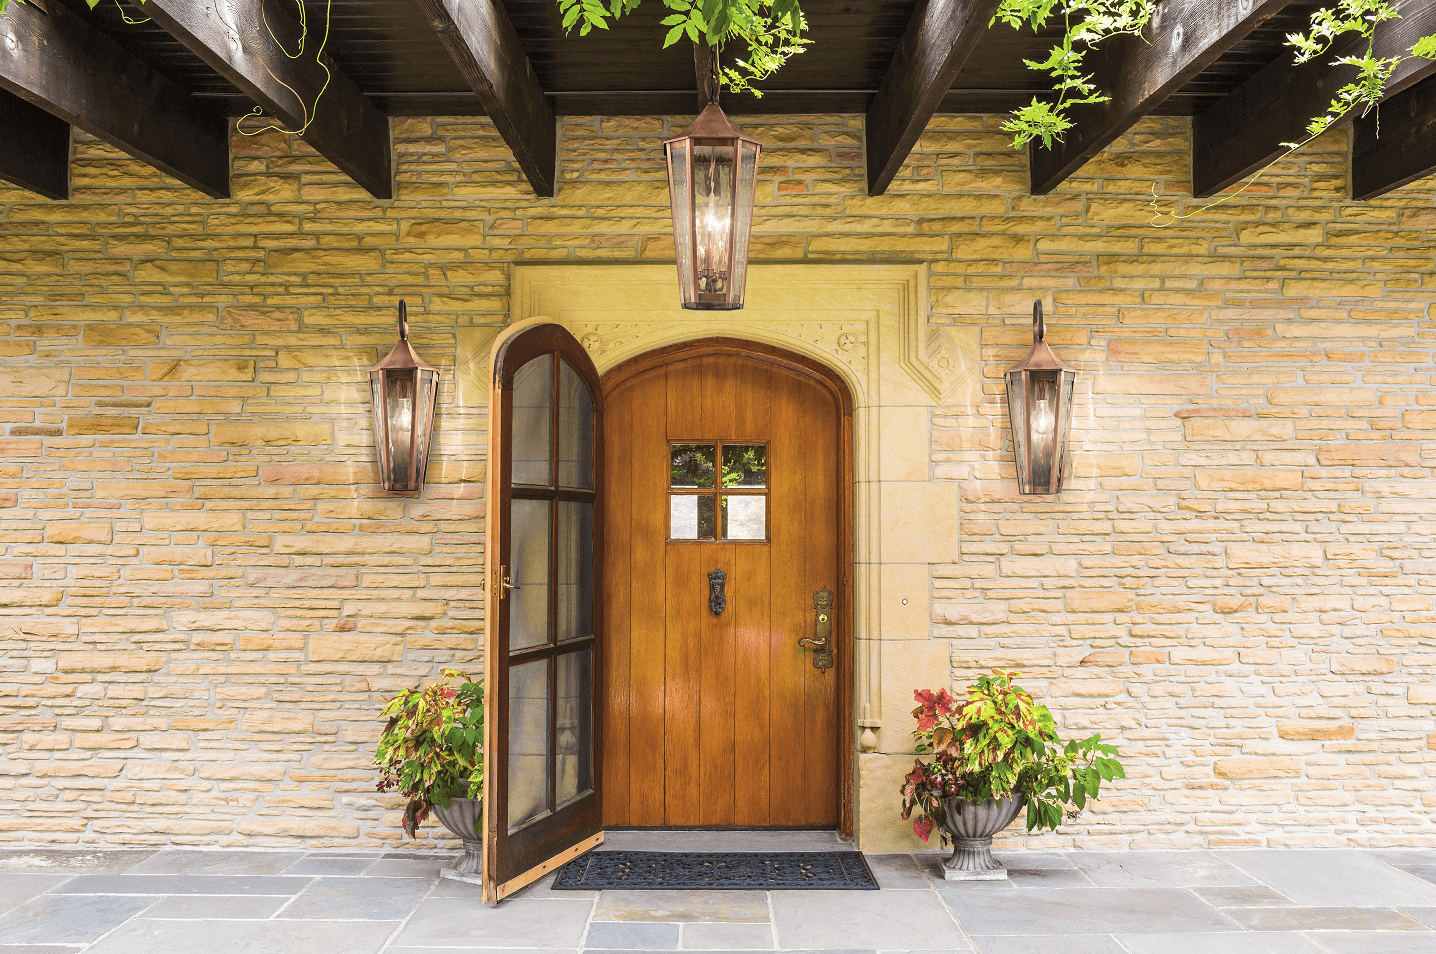 OUTDOOR PORCH LIGHT IDEAS. TIPS HOW TO CHOOSE